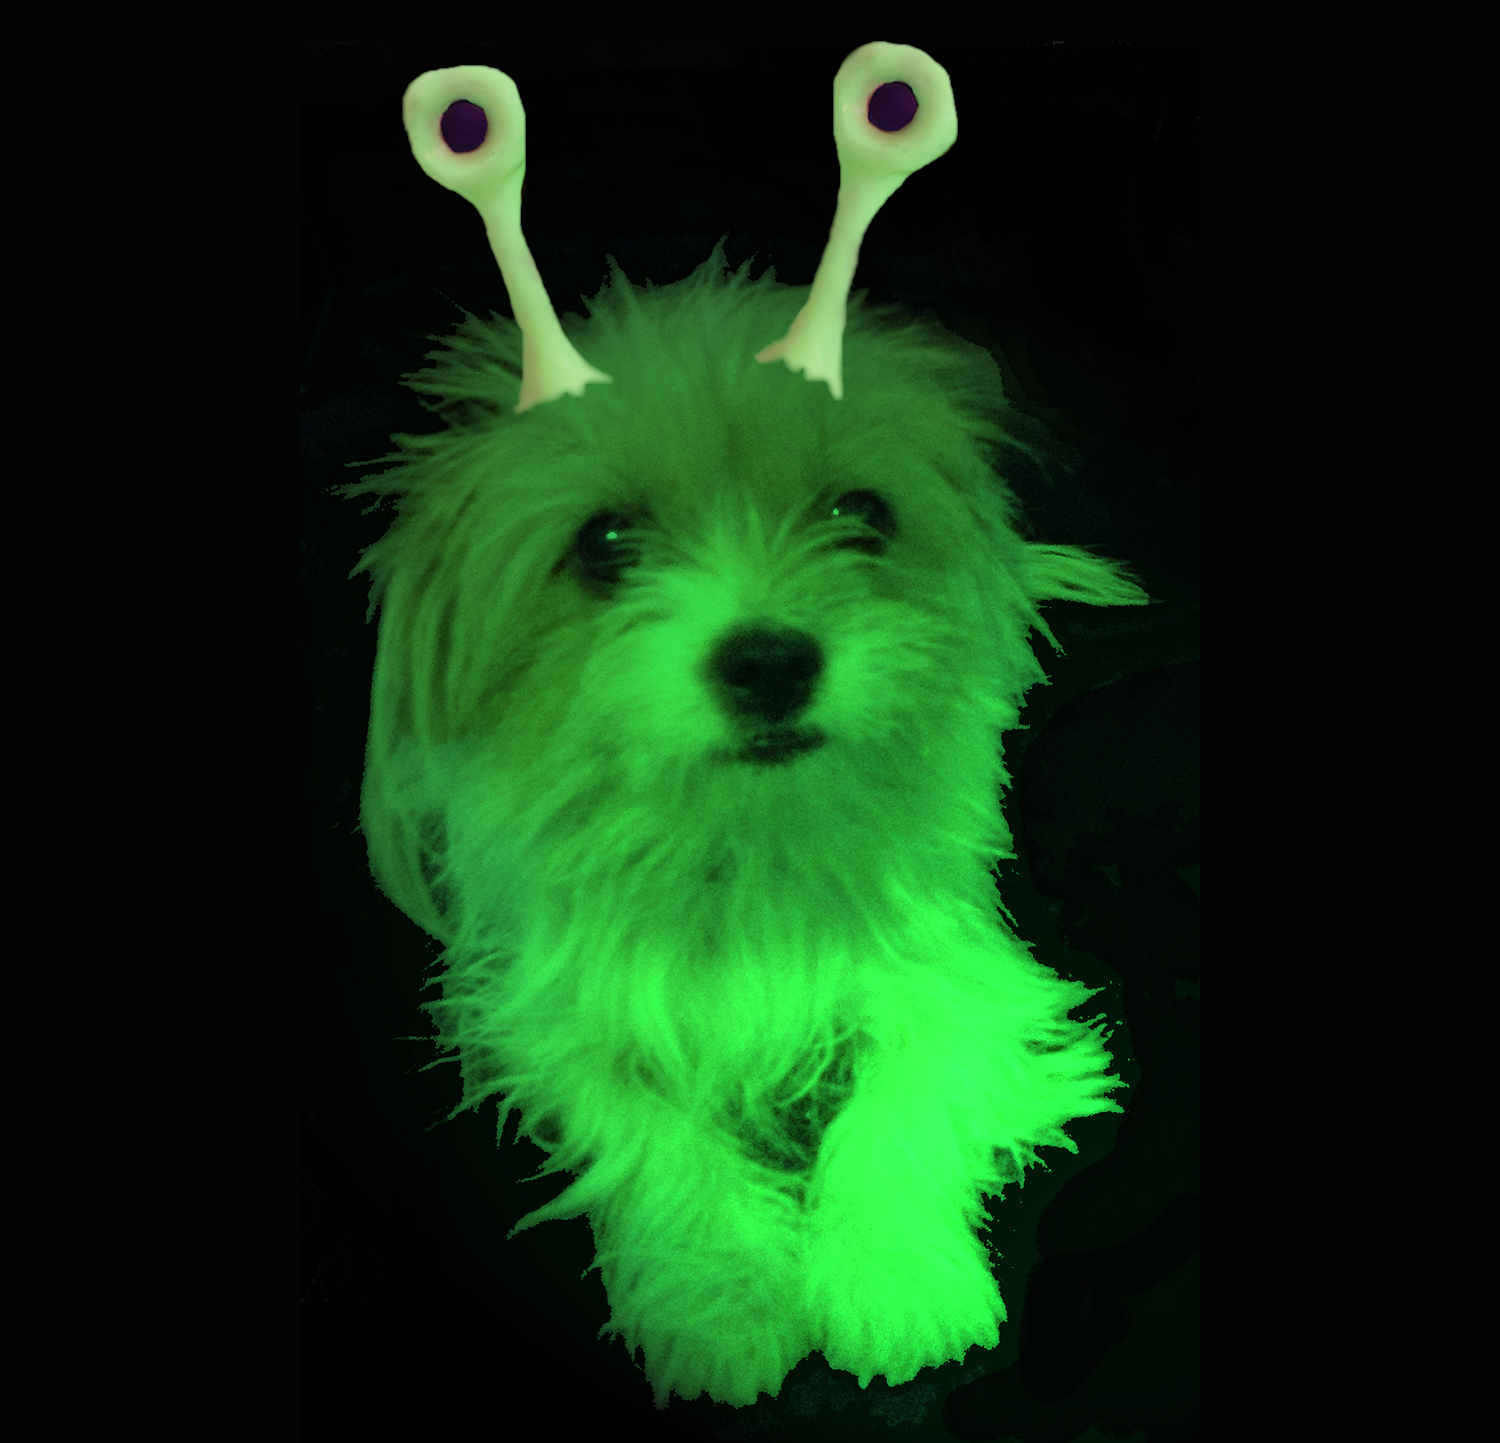 Kikki the alien dog